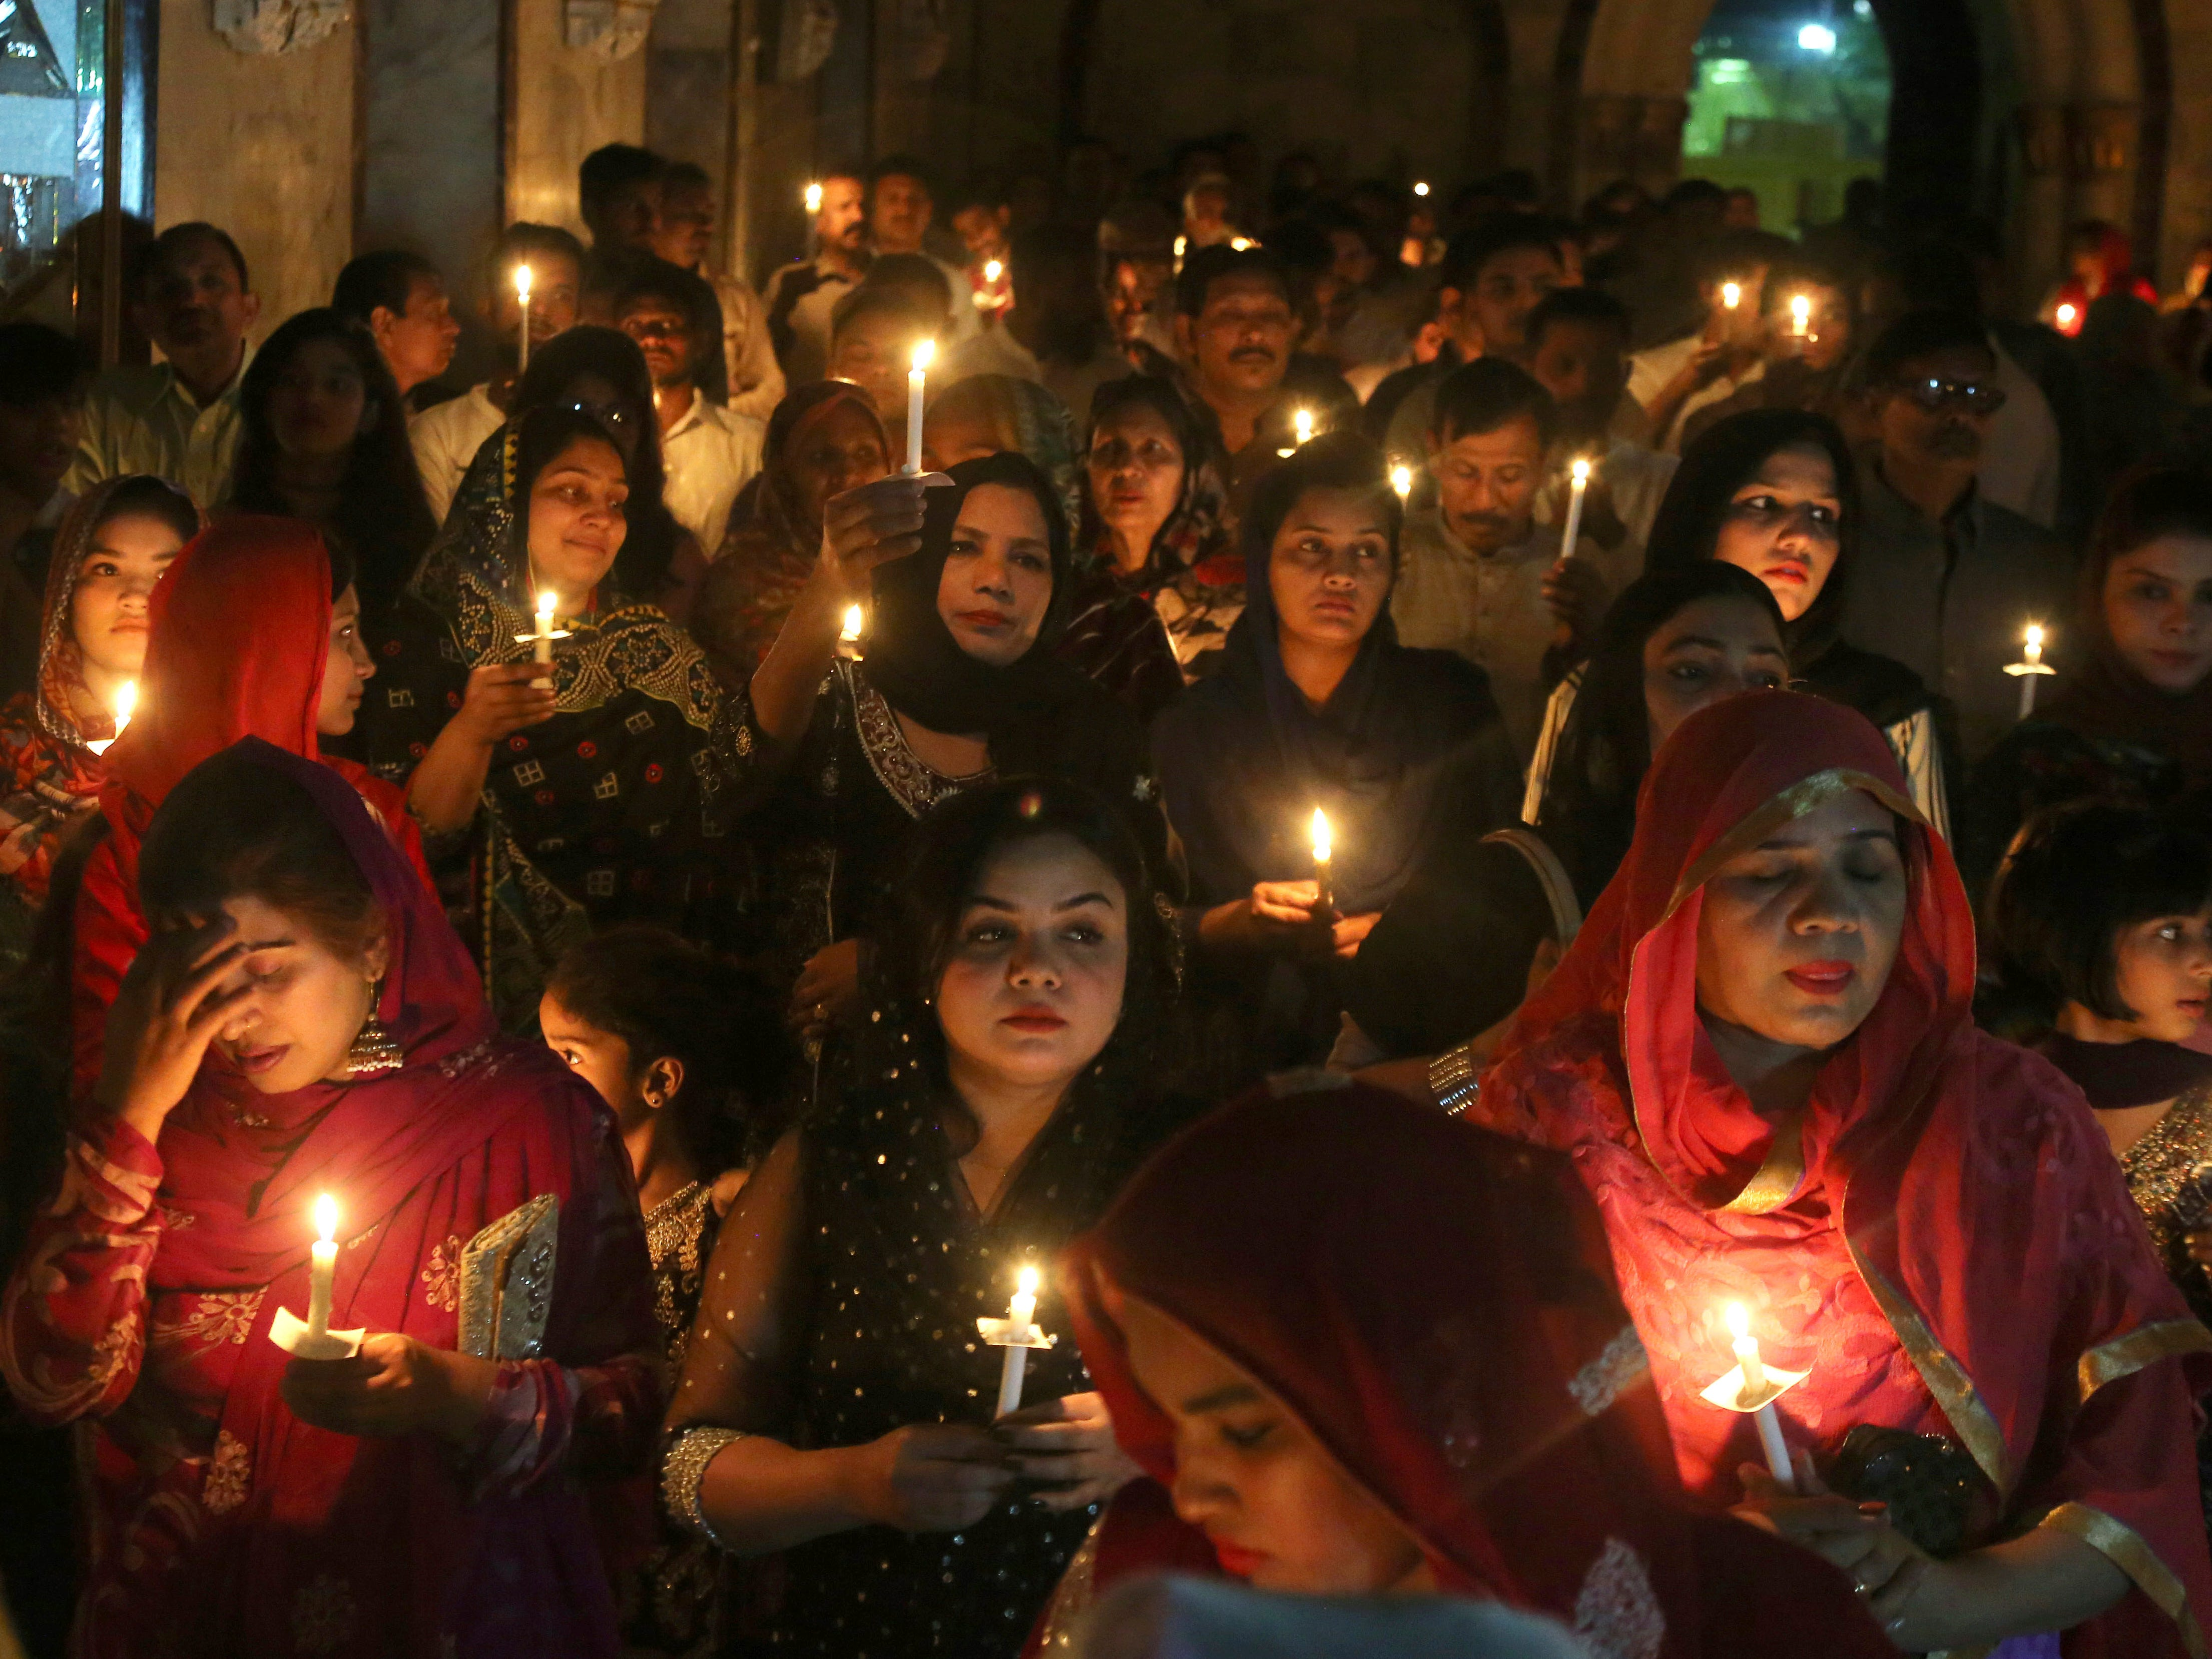 Pakistani Christians attend midnight Easter mass at St. Anthony Church in Lahore, Pakistan, Saturday, April 20, 2019. Christians across the world are celebrating Easter, commemorating the day followers believe Jesus was resurrected in Jerusalem 2,000 years ago.